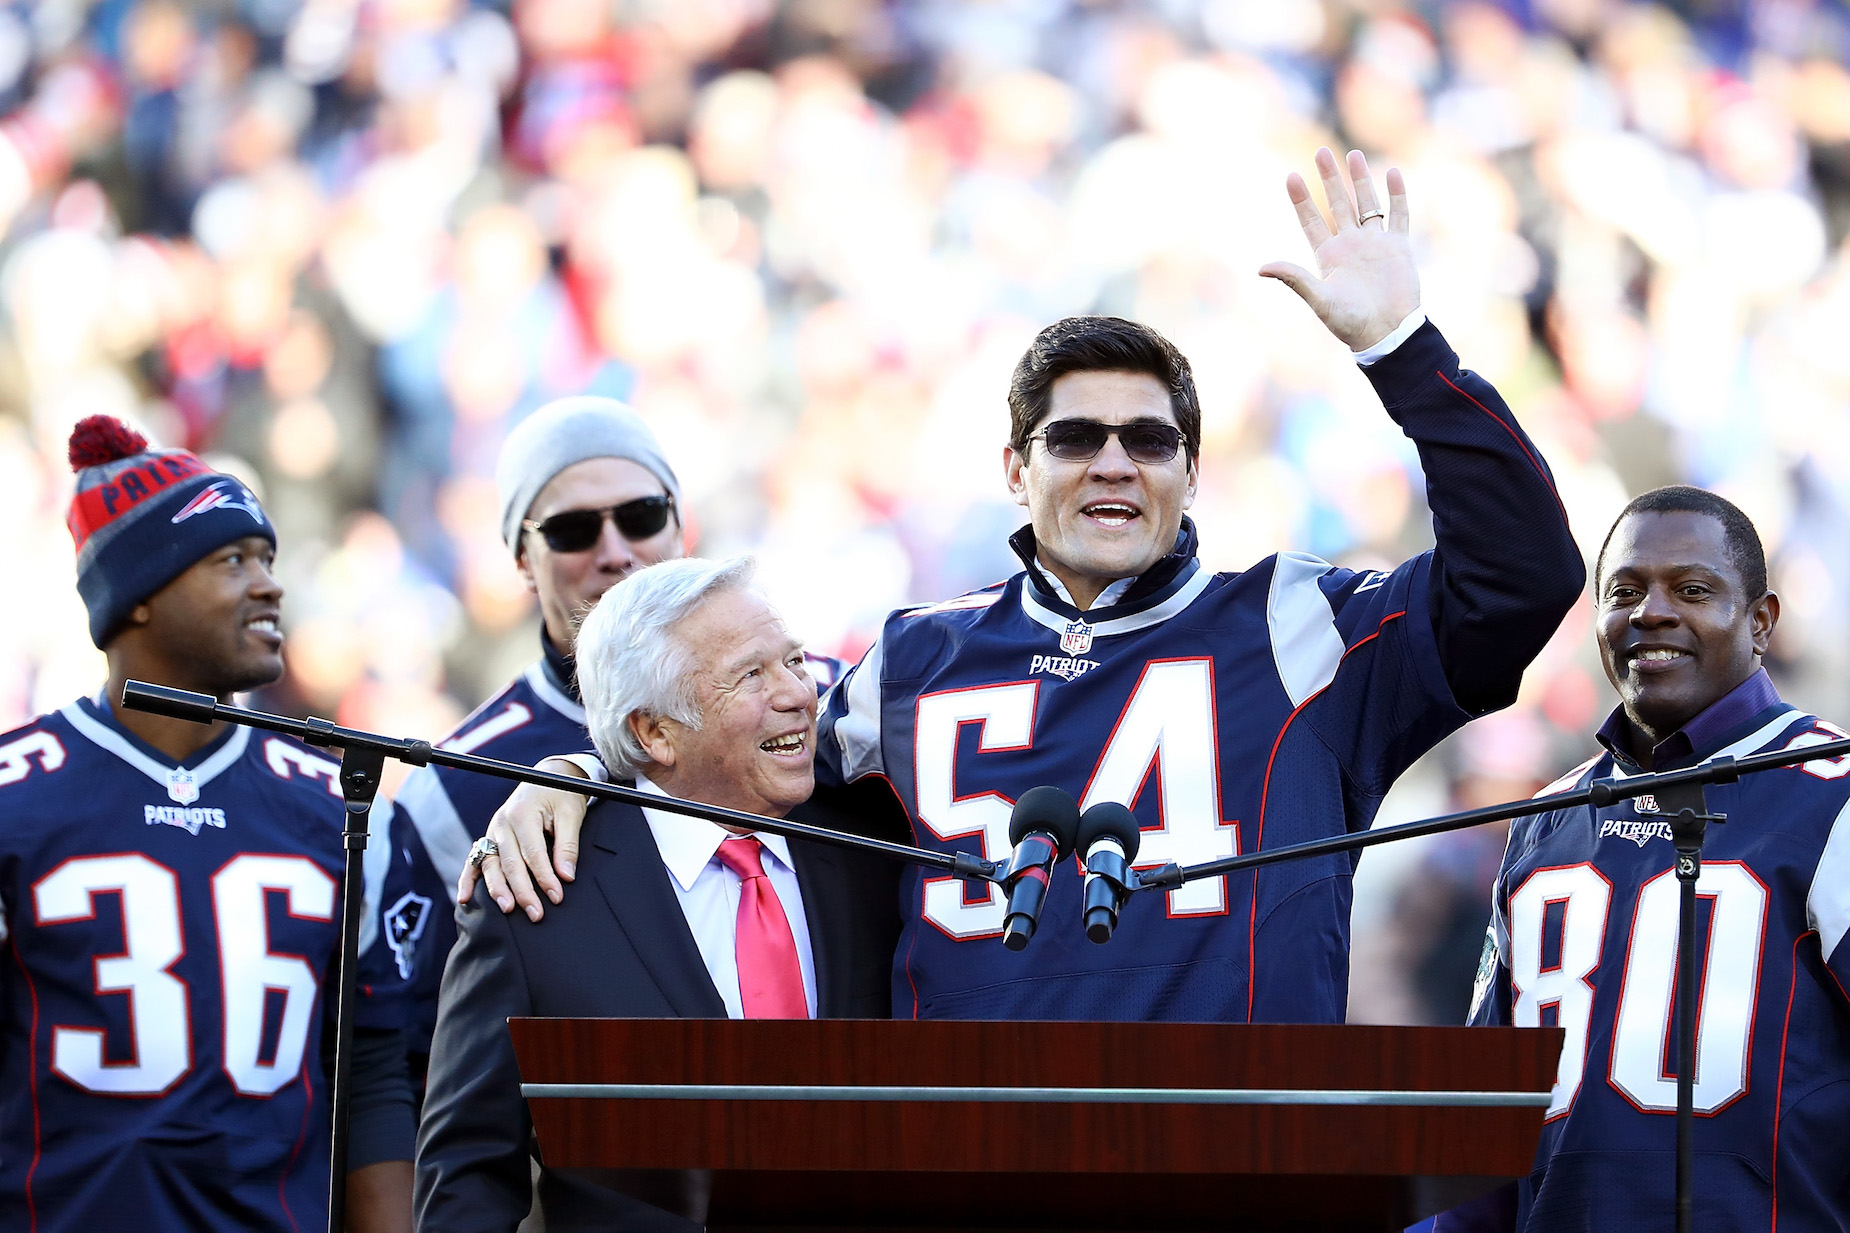 Tedy Bruschi is playing defense after appearing to criticize the New England Patriots.